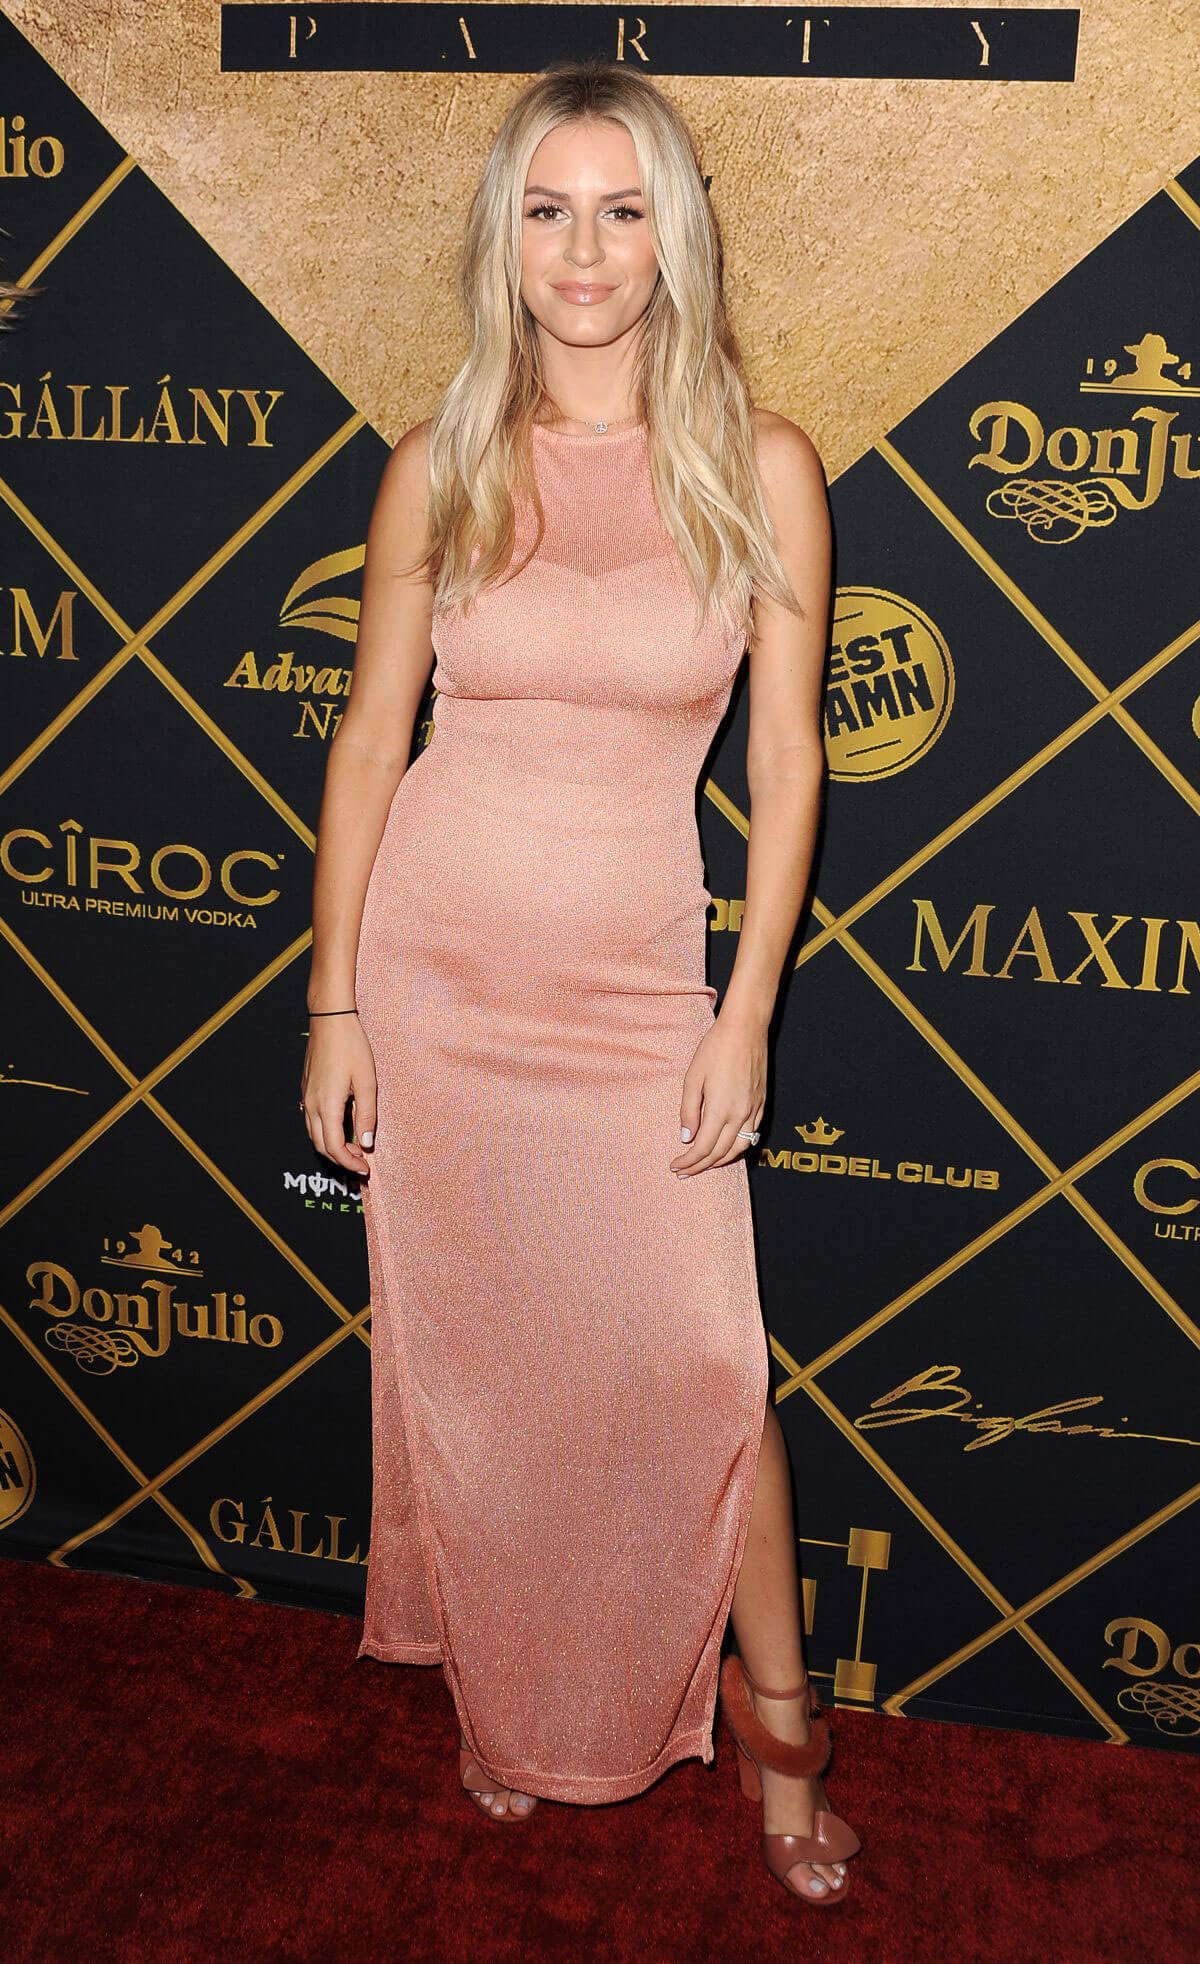 Morgan Stewart at 2016 Maxim Hot 100 Party in Los Angeles